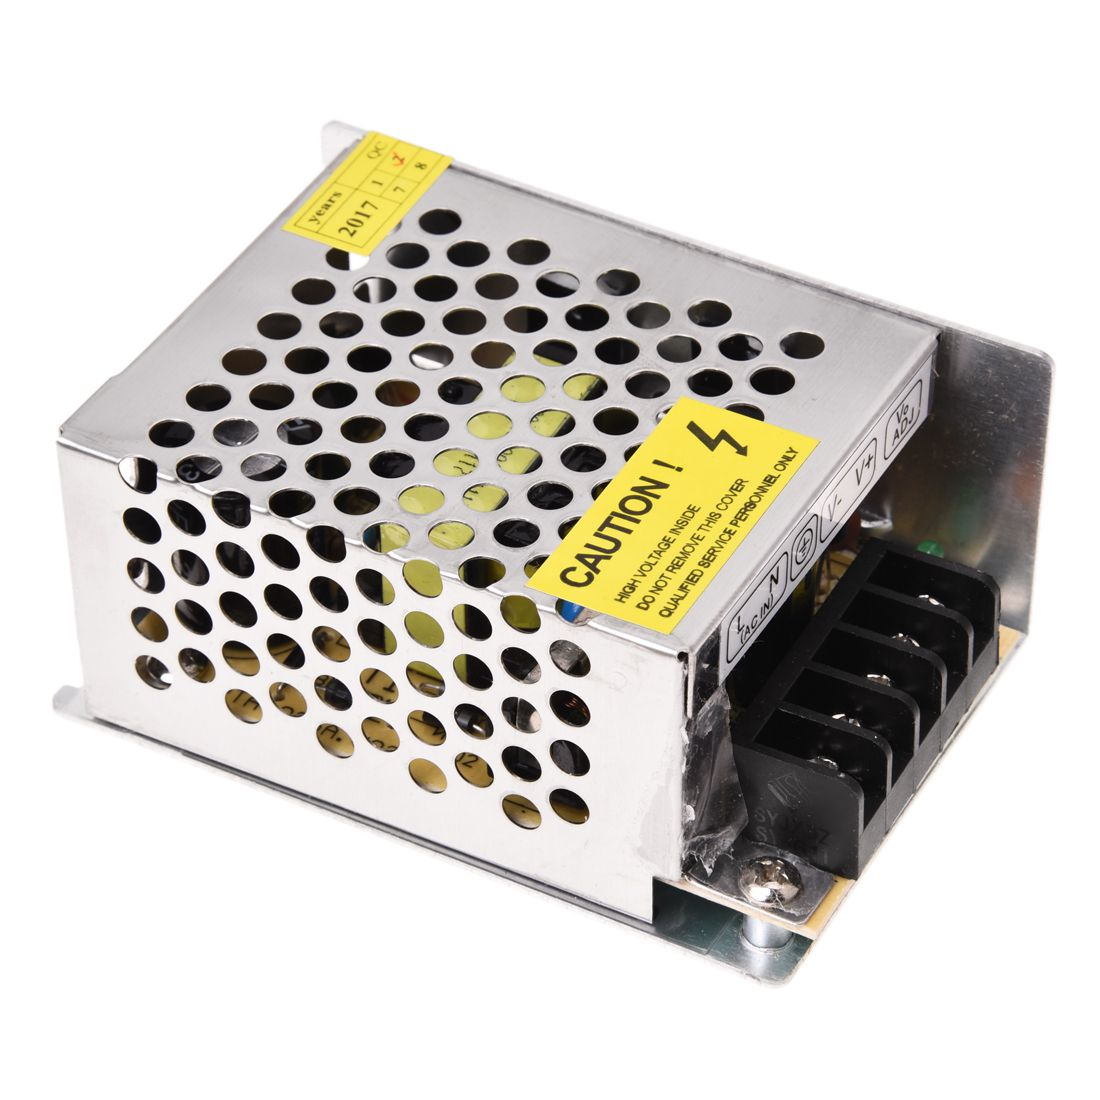 Wholesales item 36W Driver Power supply Transformer DC 12V 3A by Band LED Light LampWholesales item 36W Driver Power supply Transformer DC 12V 3A by Band LED Light Lamp